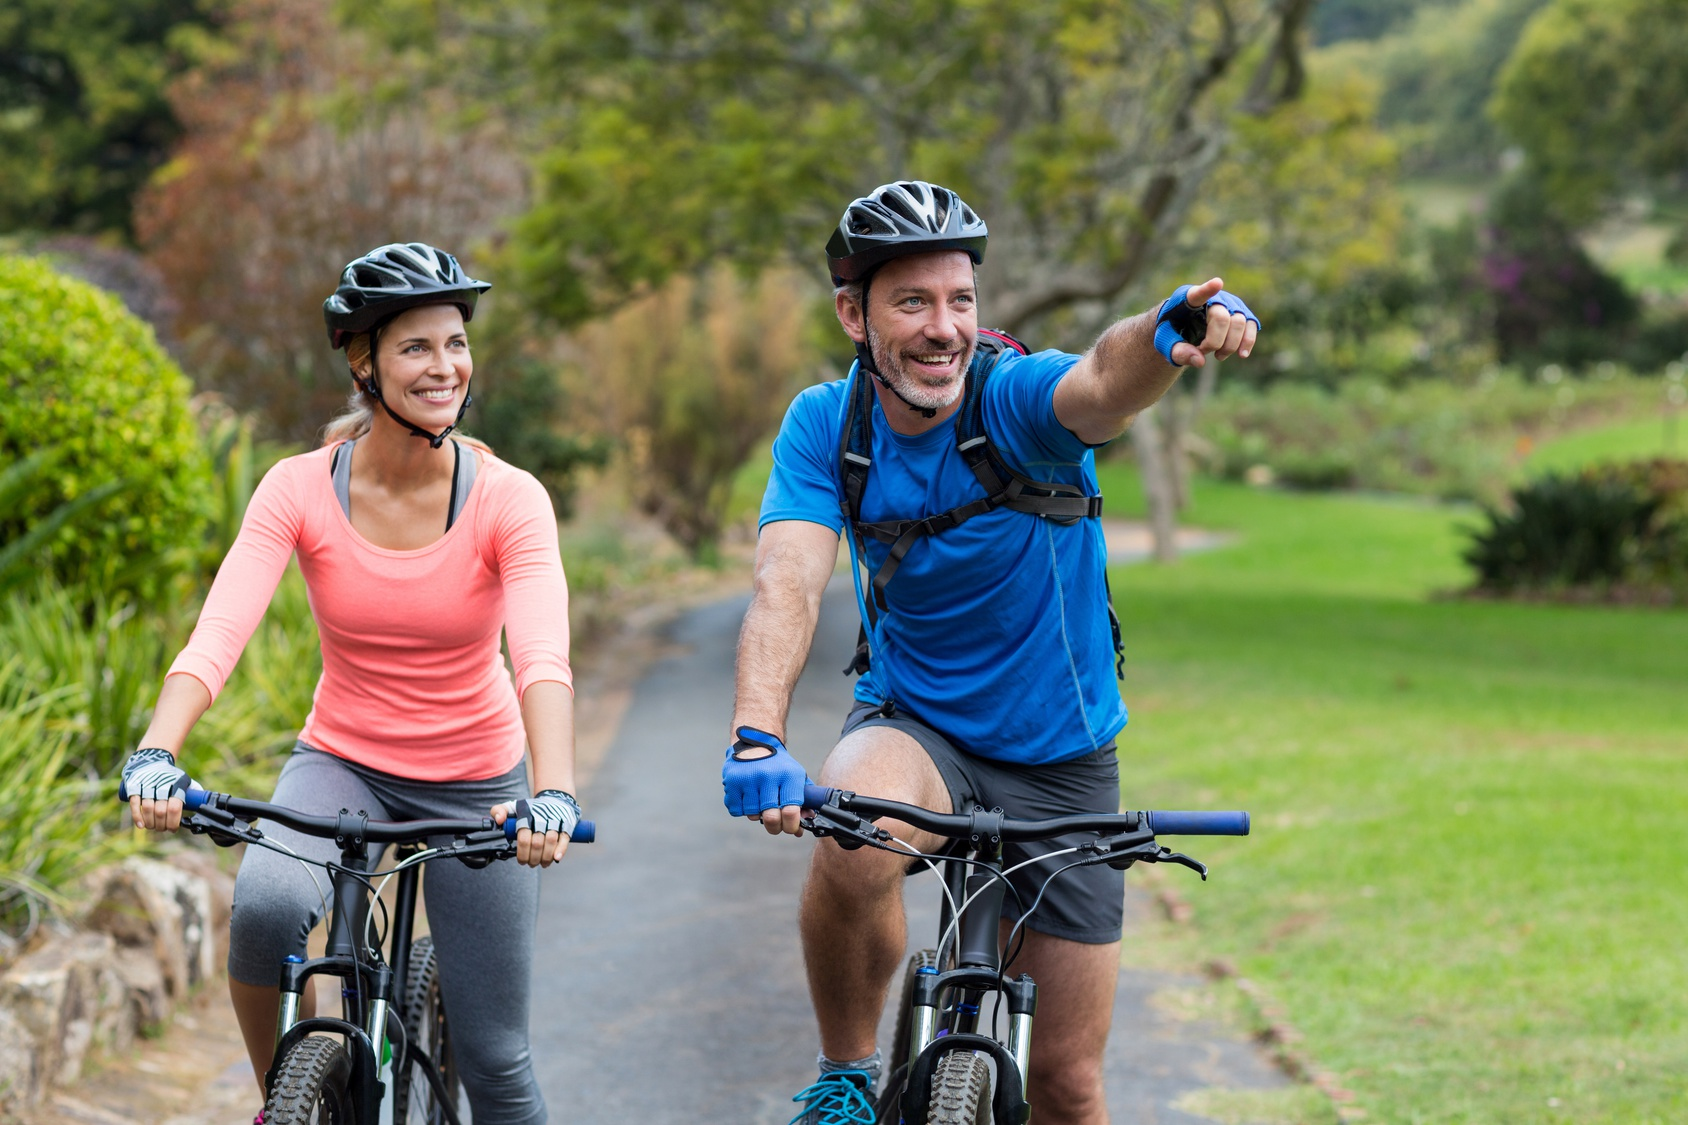 Athletic couple pointing while riding bicycle